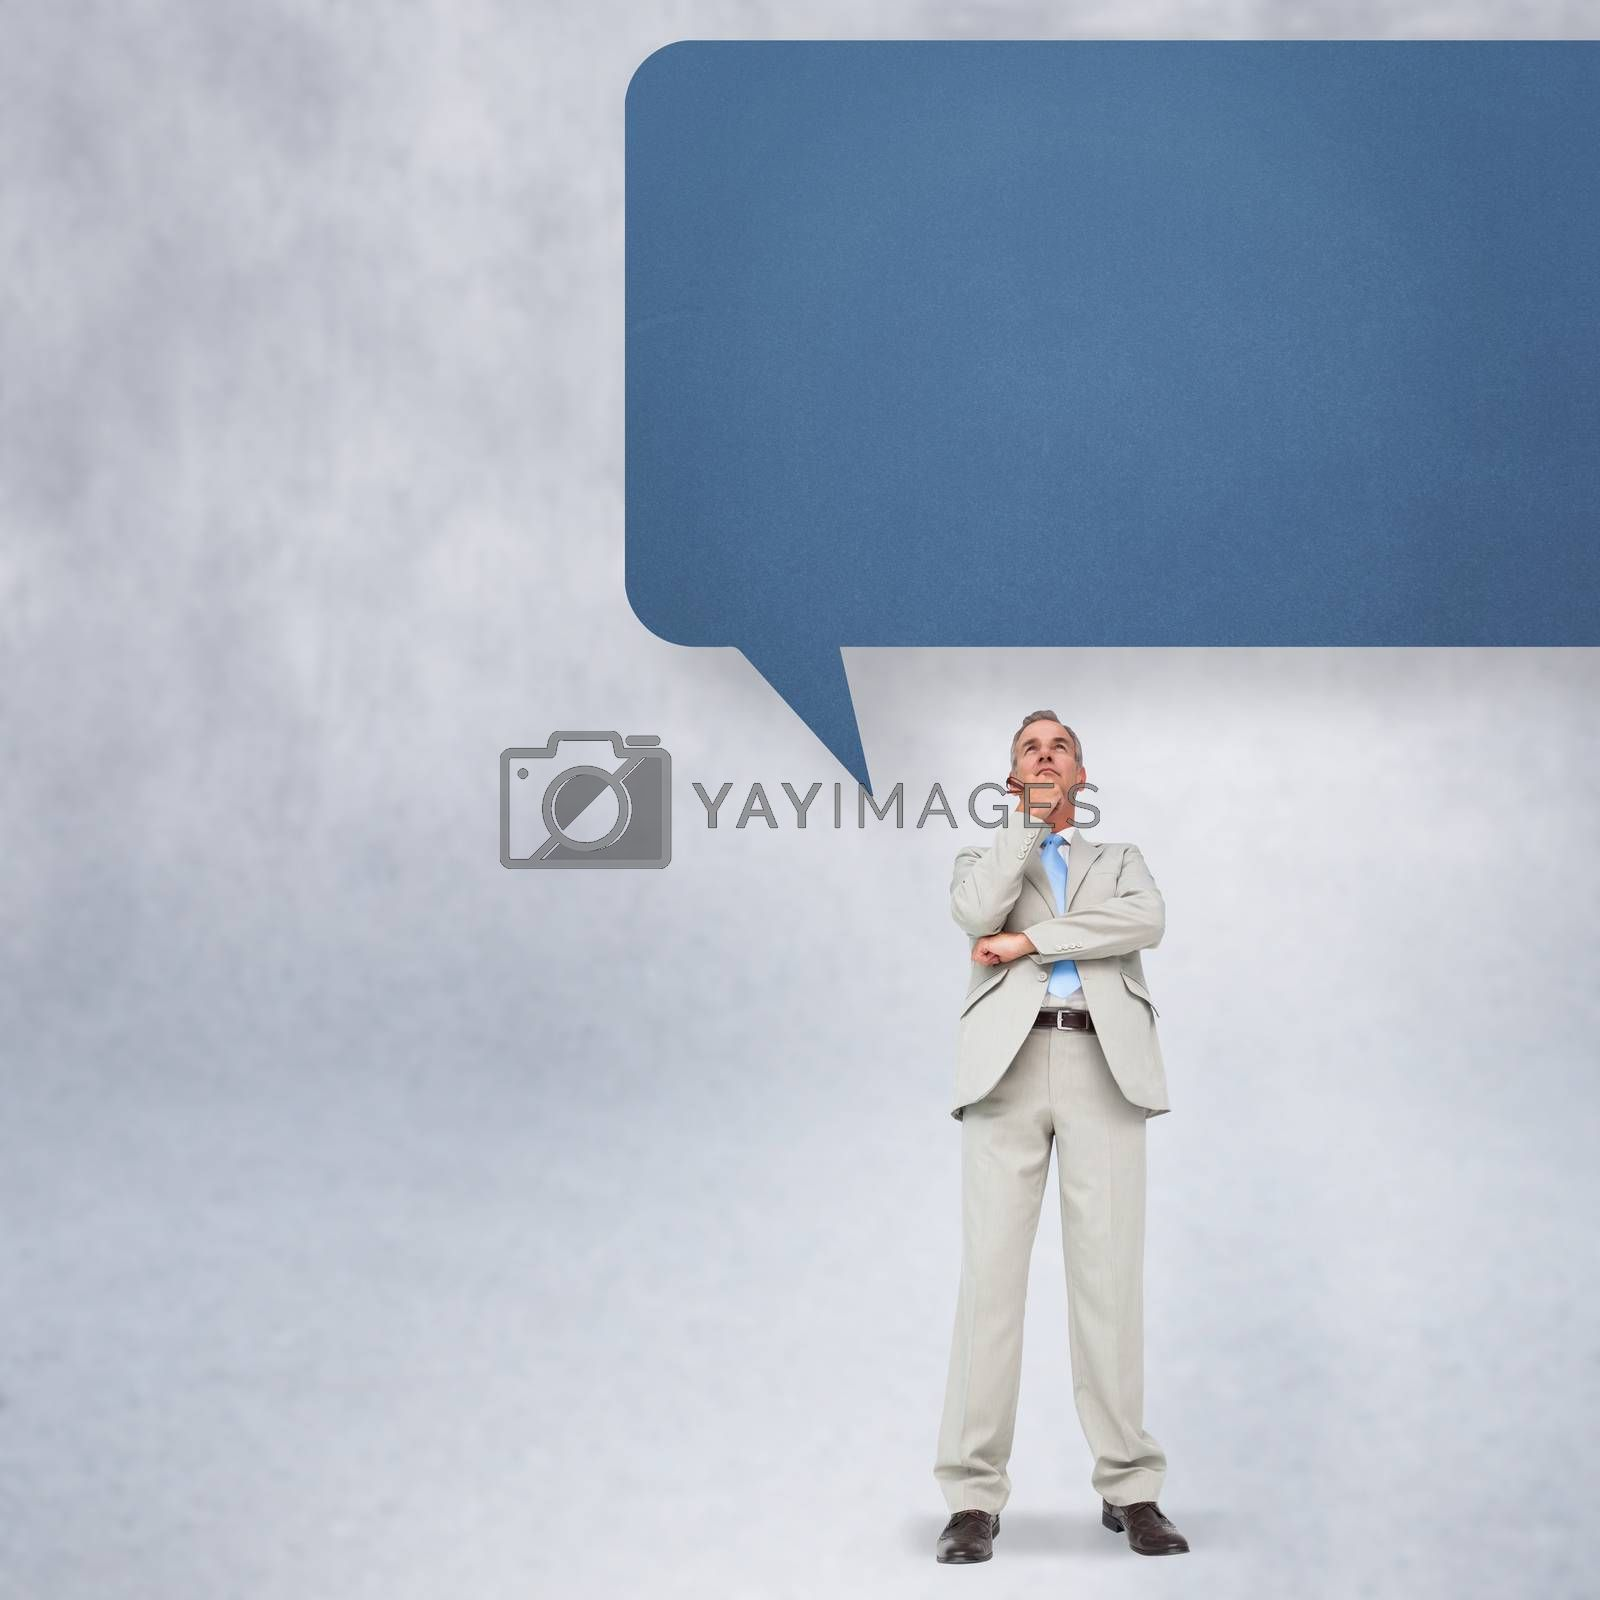 Thinking businessman with speech bubble by Wavebreakmedia